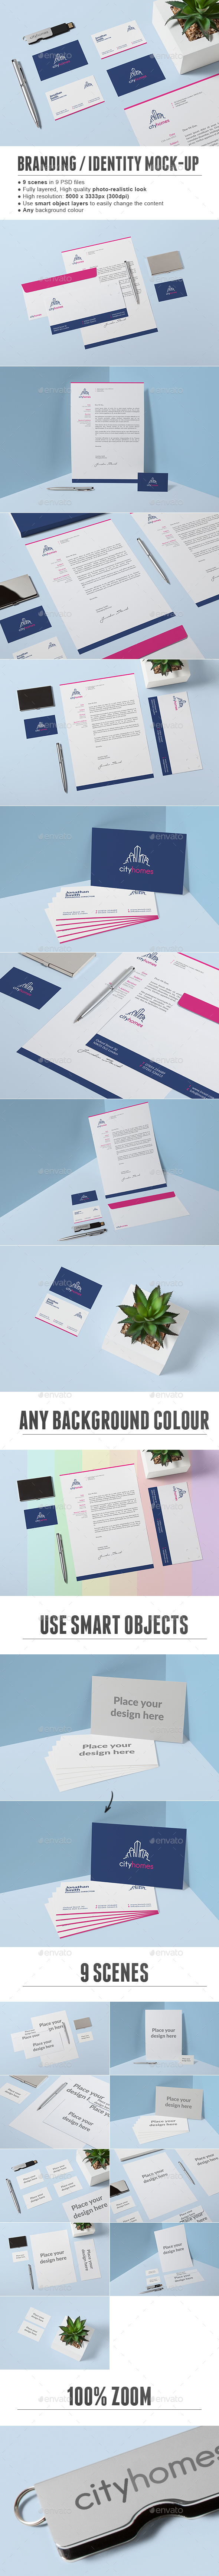 Branding / Identity Mock-up - Print Product Mock-Ups